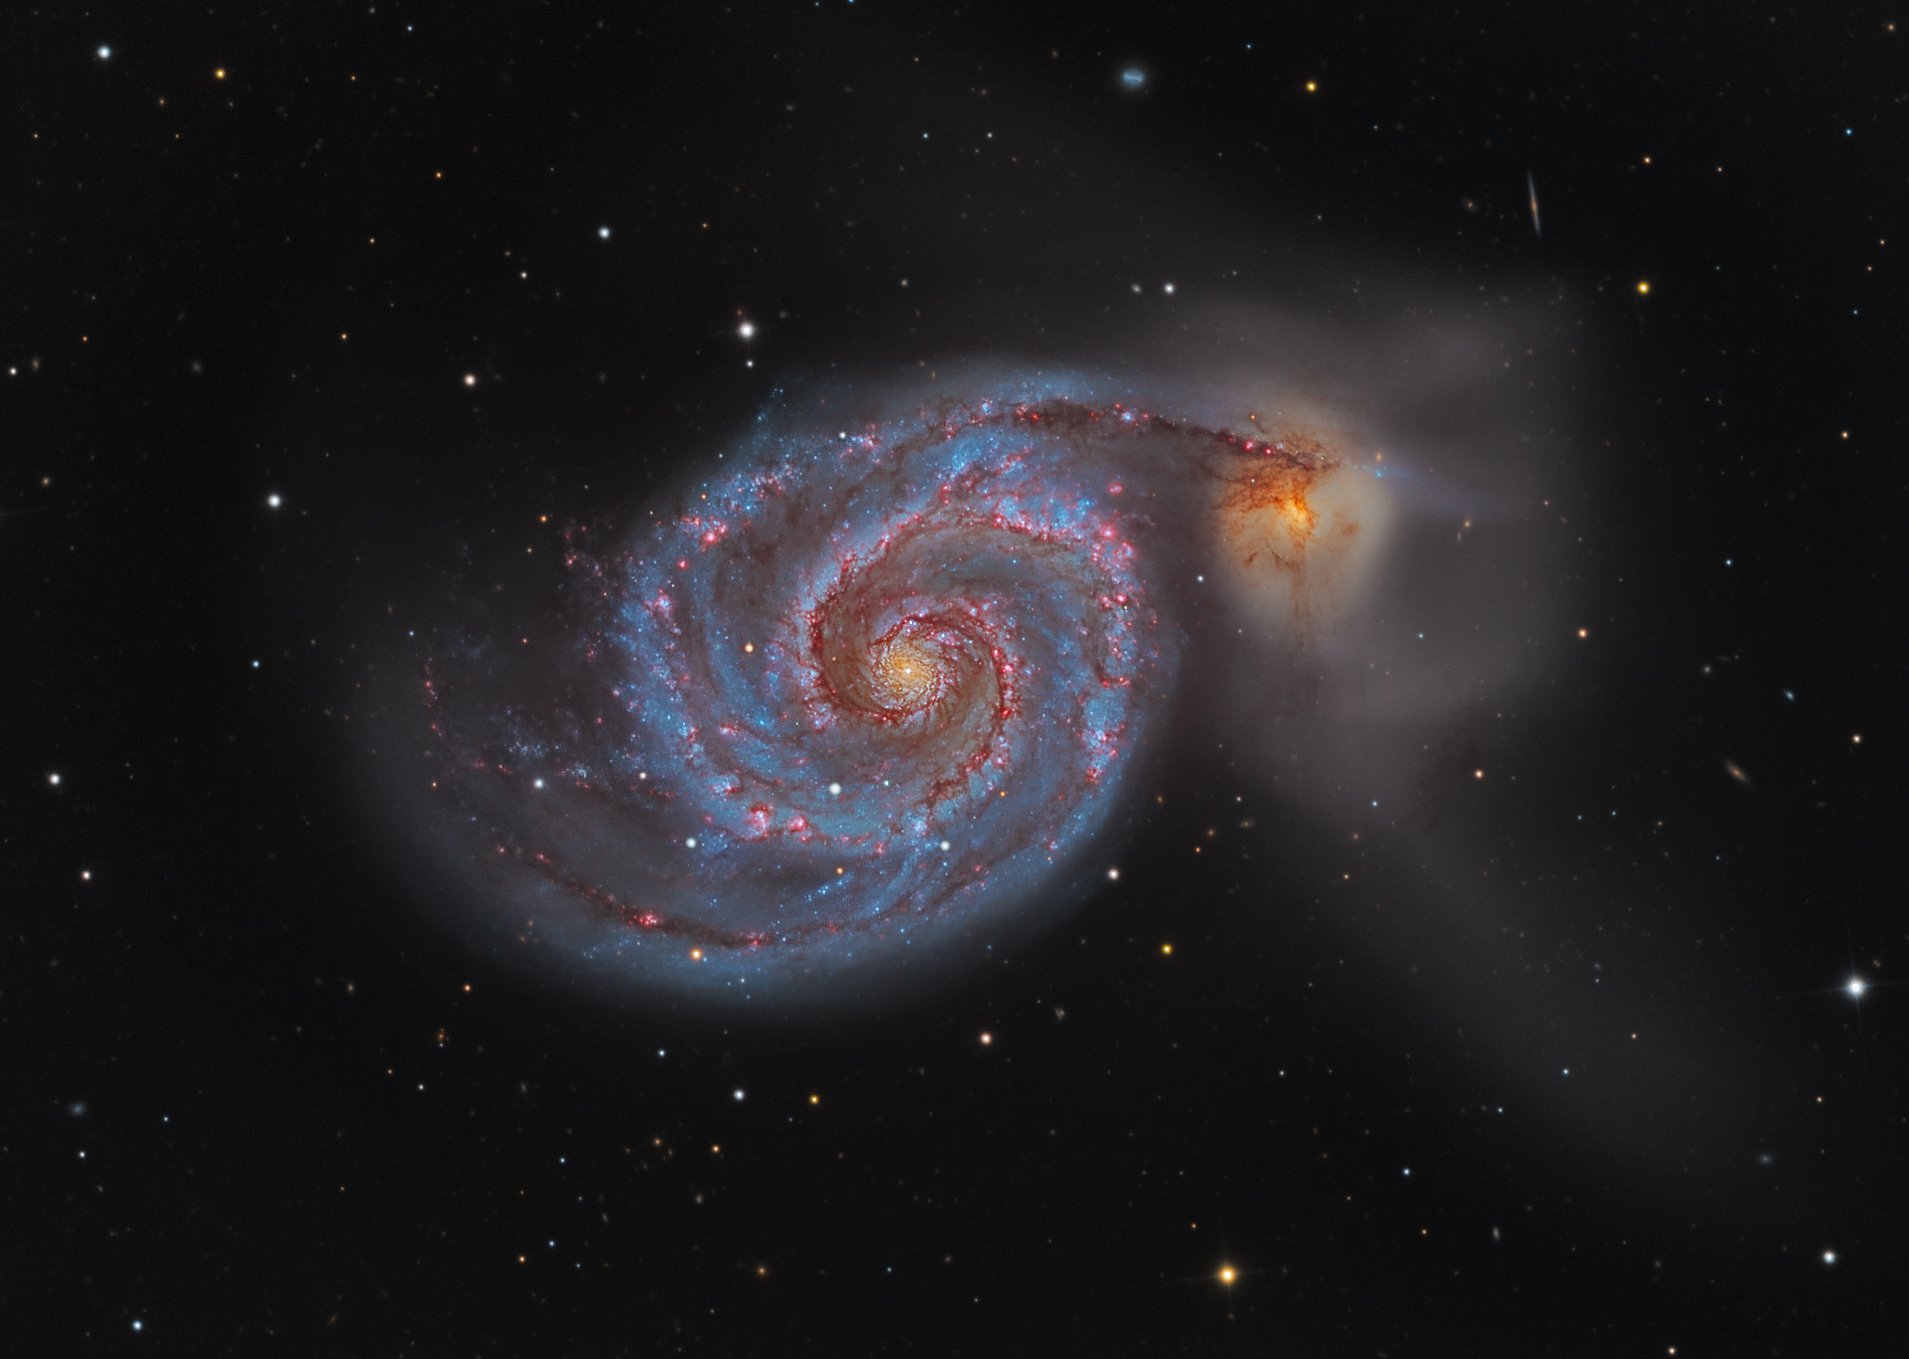 whirlpool galaxy hubble nasa center picture - photo #18